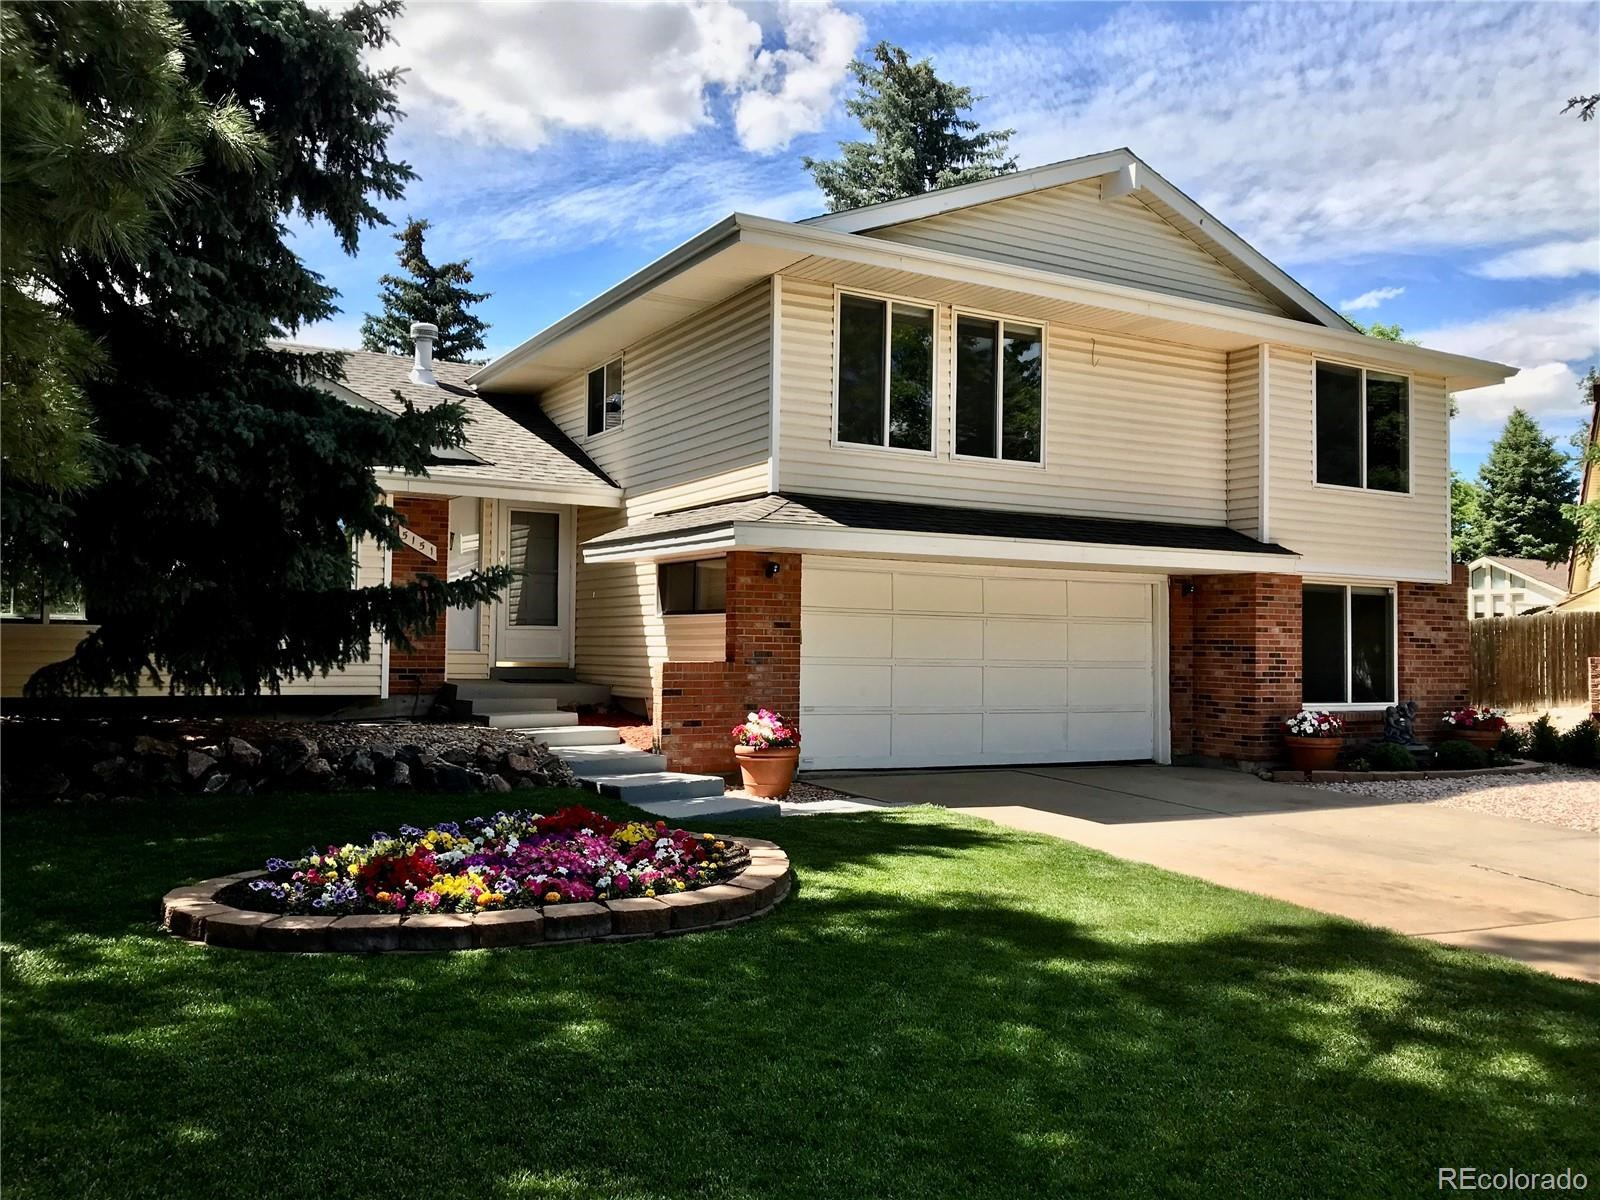 MLS# 3980379 - 2 - 5151 W 99th Court, Westminster, CO 80031